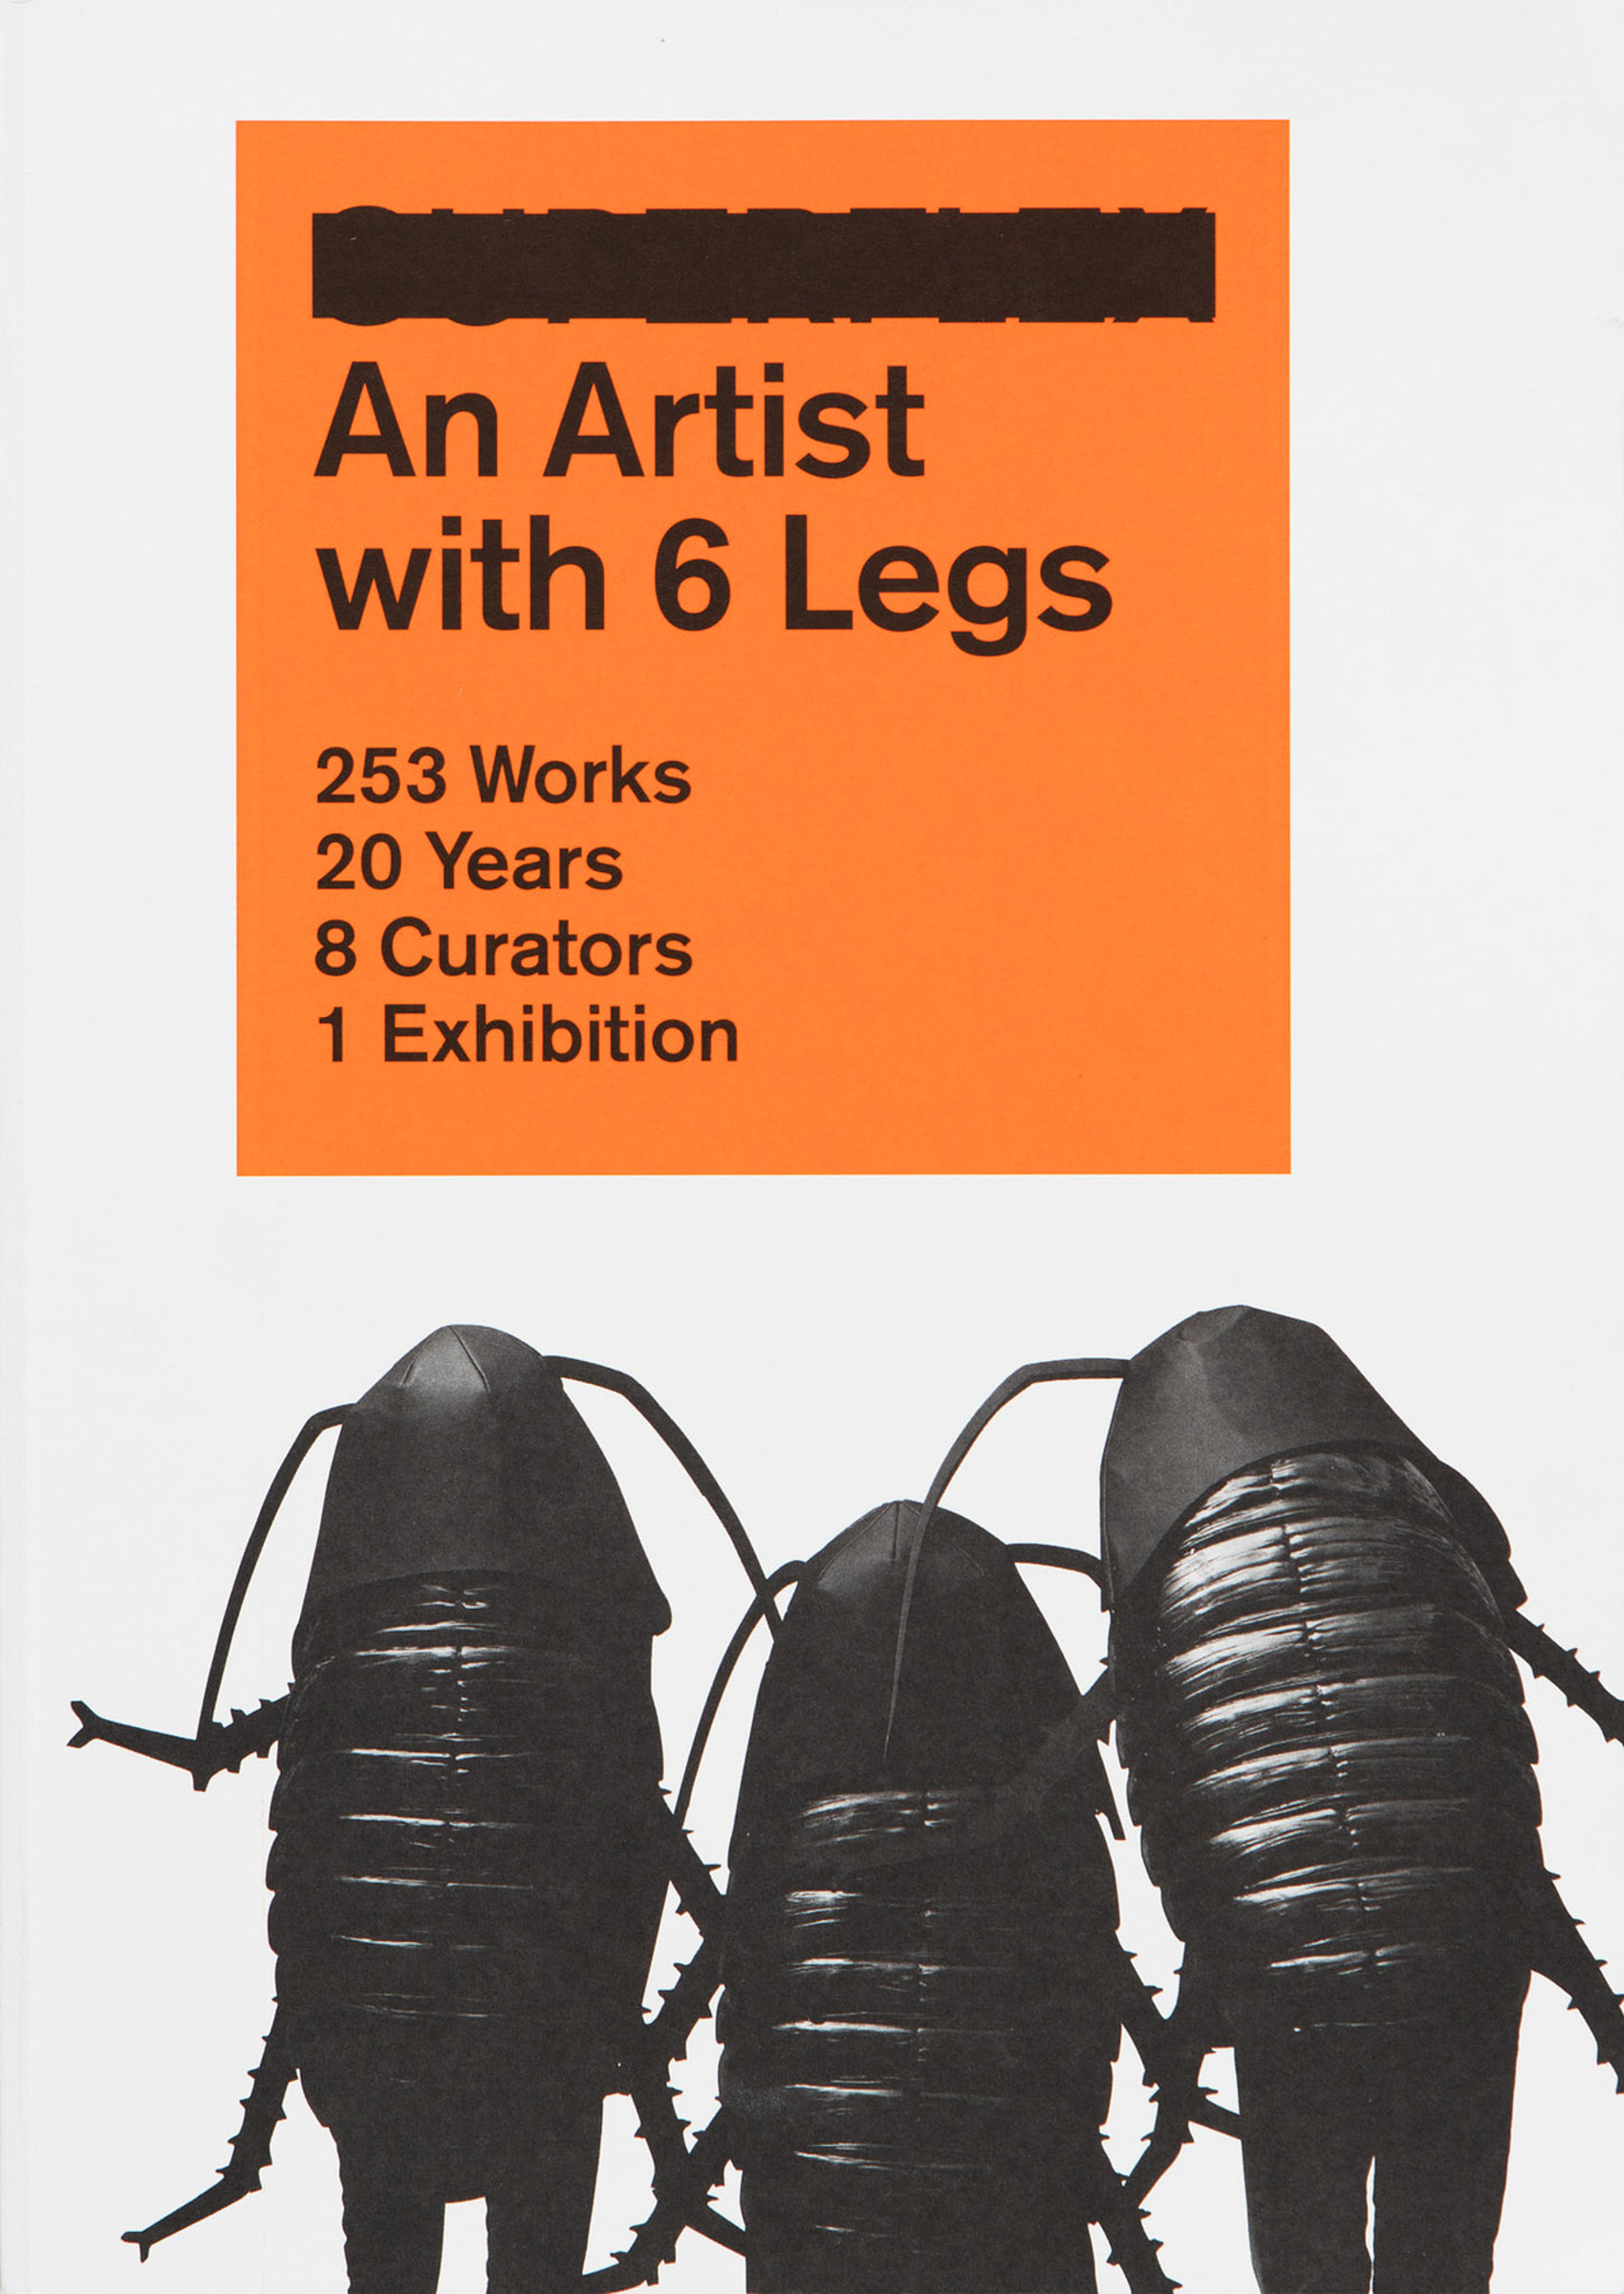 Book no. 14: SUPERFLEX, An Artist with 6 Legs